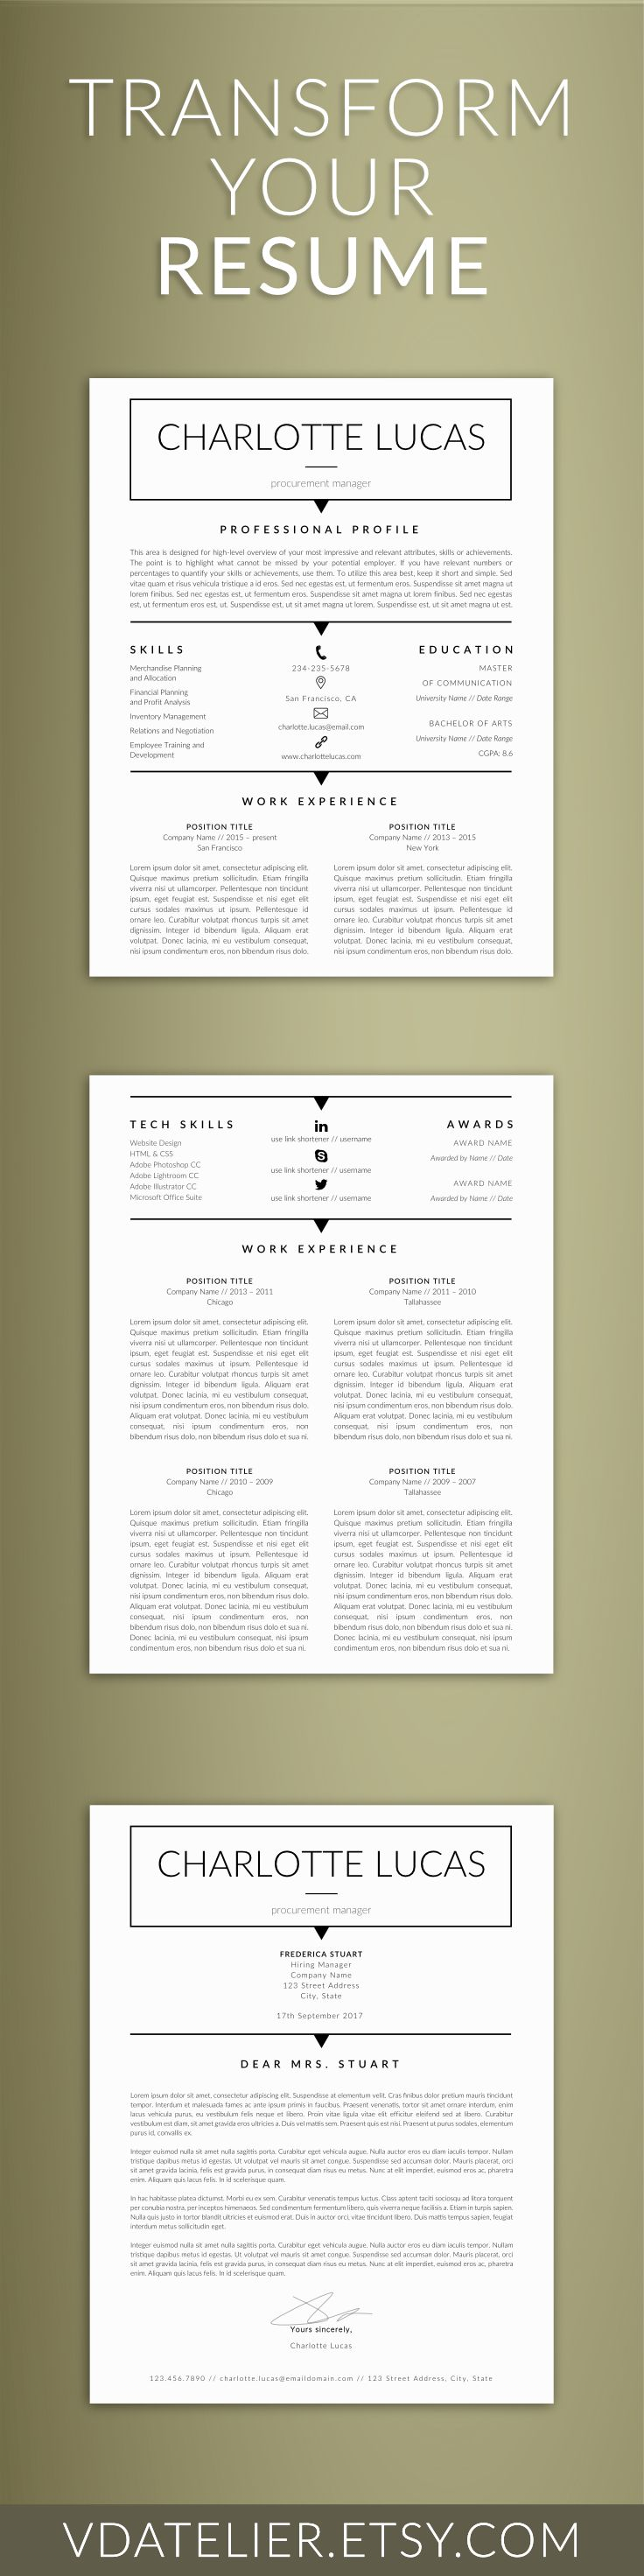 12 best Resume / CV Templates images on Pinterest | Curriculum, Cv ...